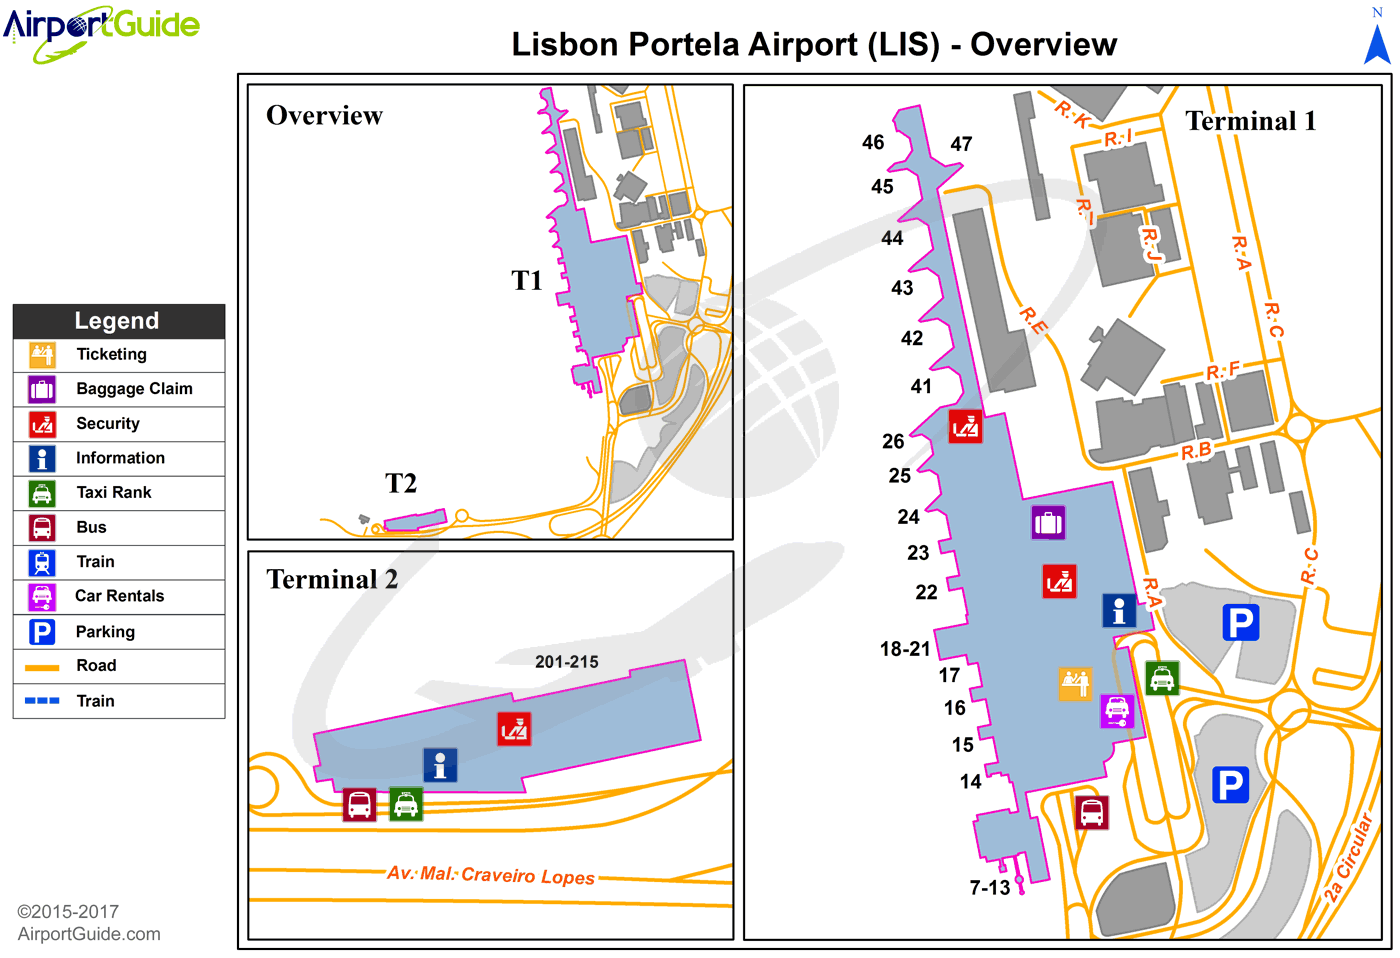 LIS Airport Terminal Map - Overview